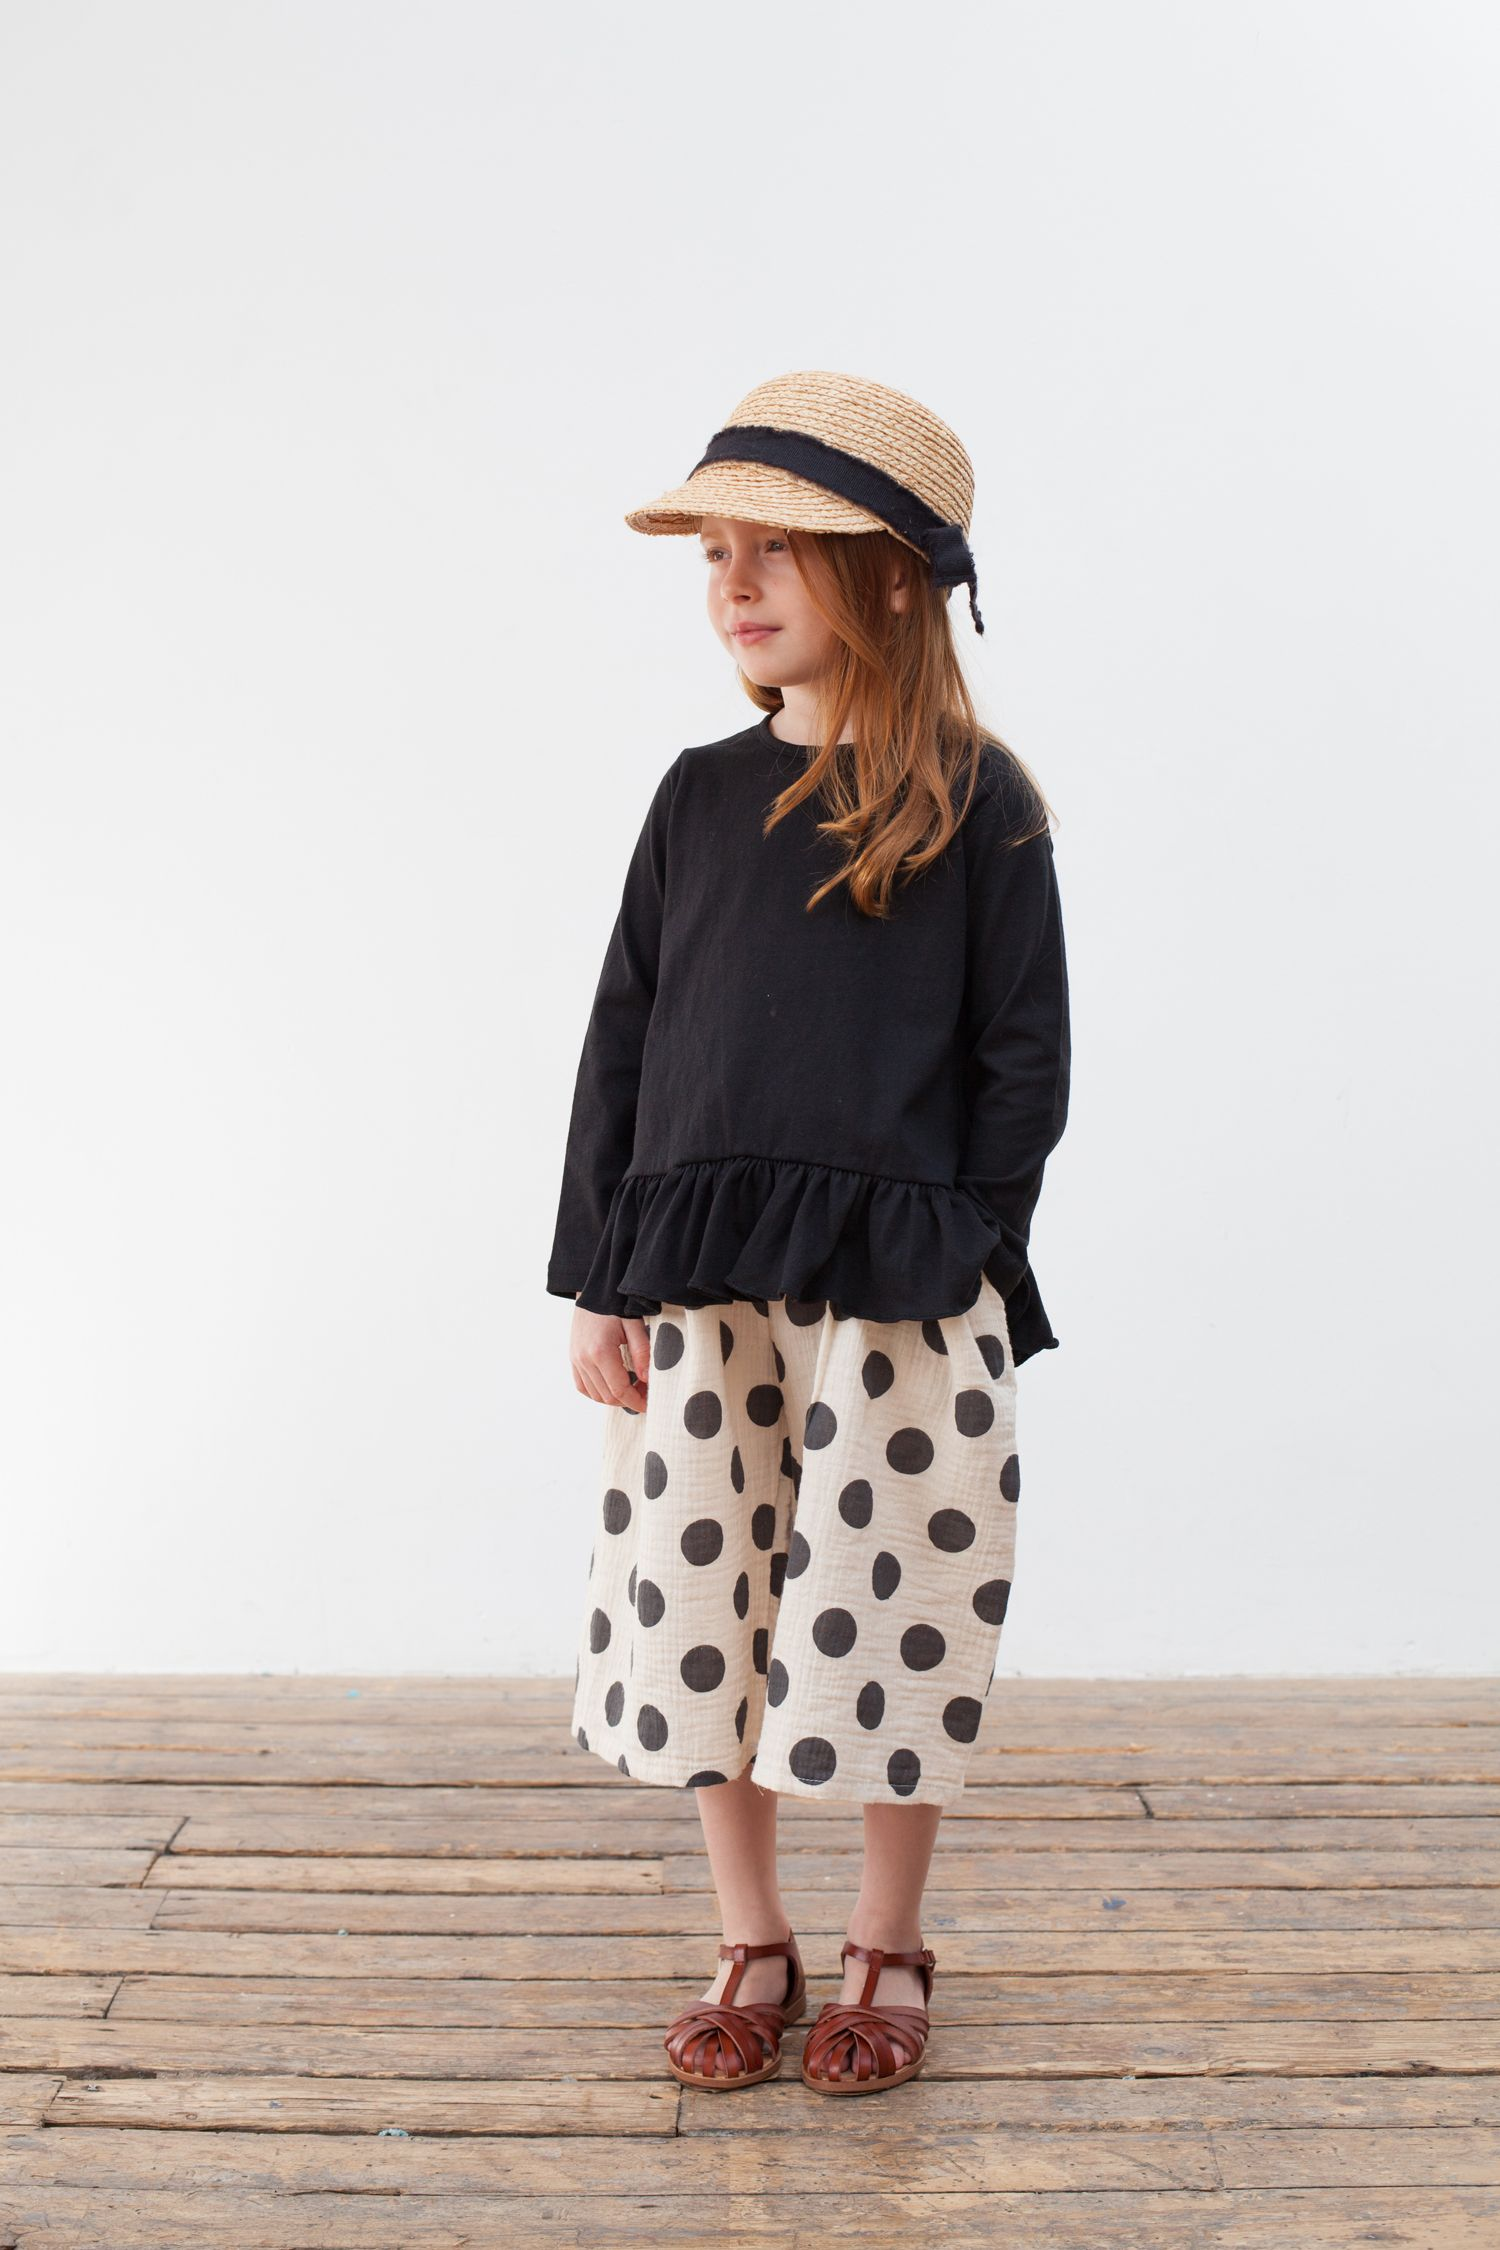 Amber Chuette top + Beneben raffia cap + Dotted culottes. Beautiful fashion  for girls from Korean brands. www.lublue.co.uk a6667dc19